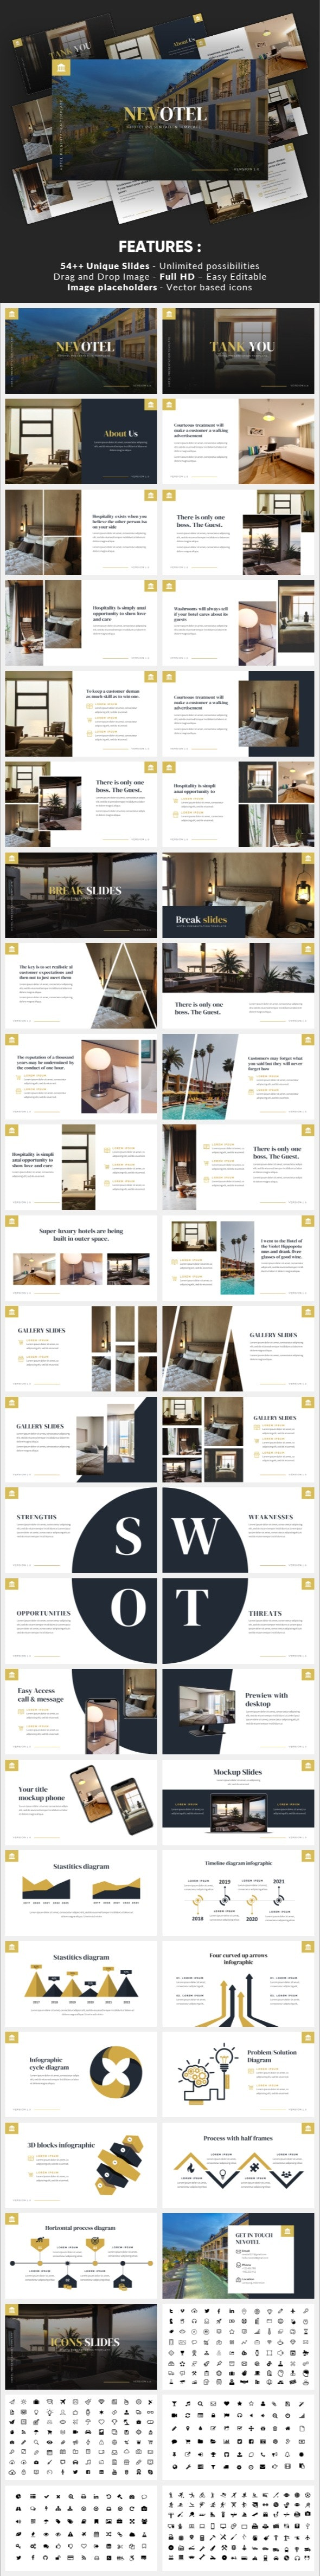 Nevotel - Luxury Hotel Powerpoint Template - Business PowerPoint Templates